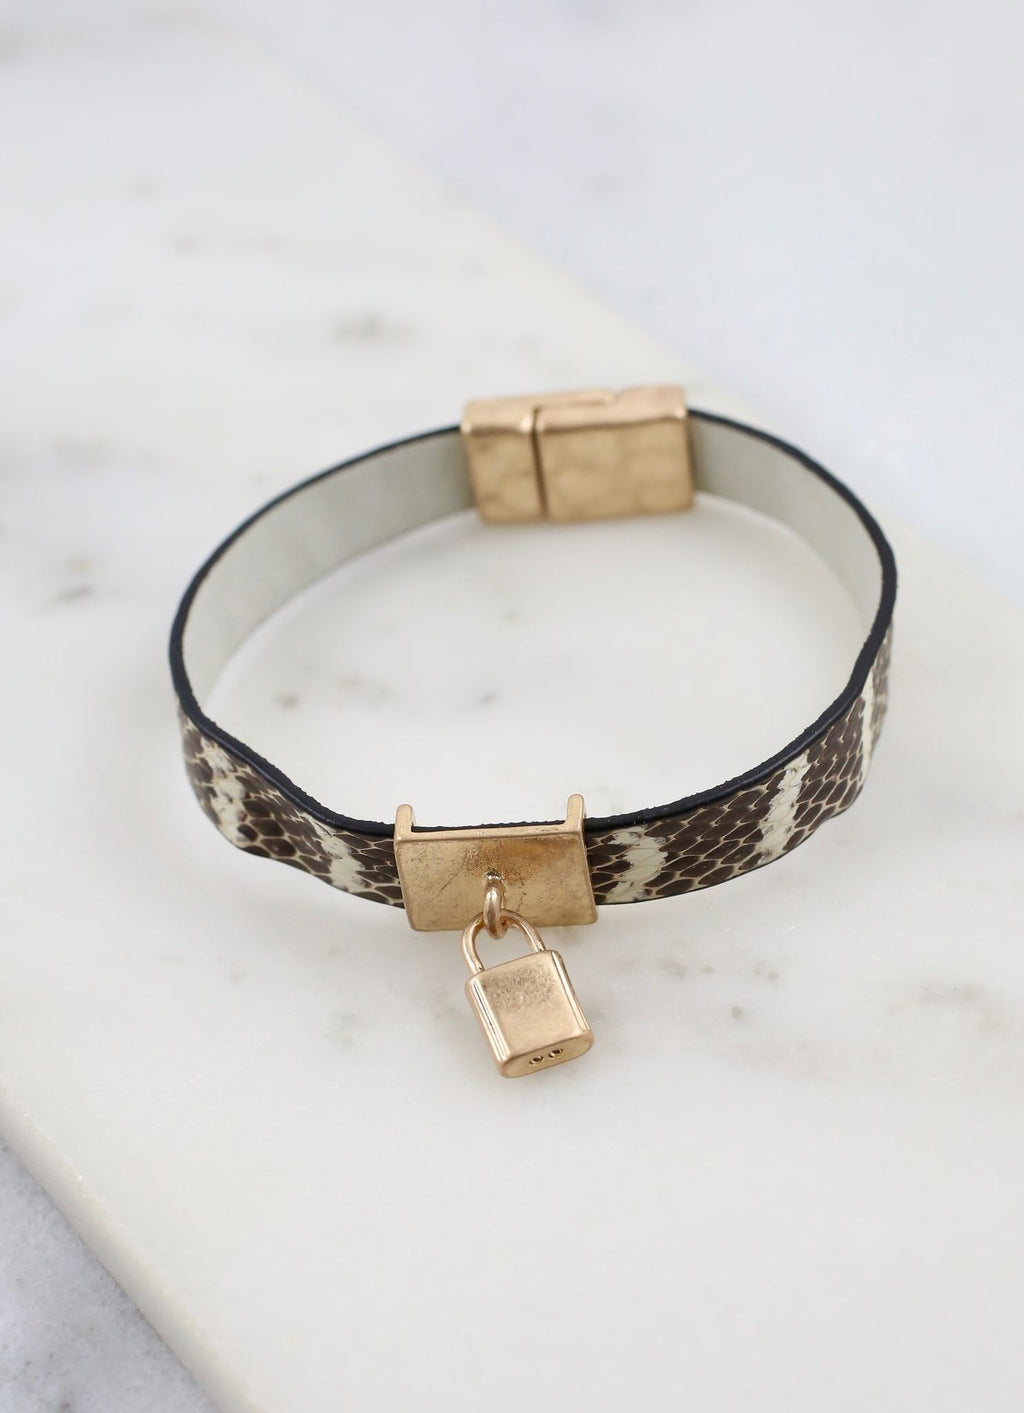 Baxter Magnetic Leather Bracelet With Lock Charm Taupe - Caroline Hill